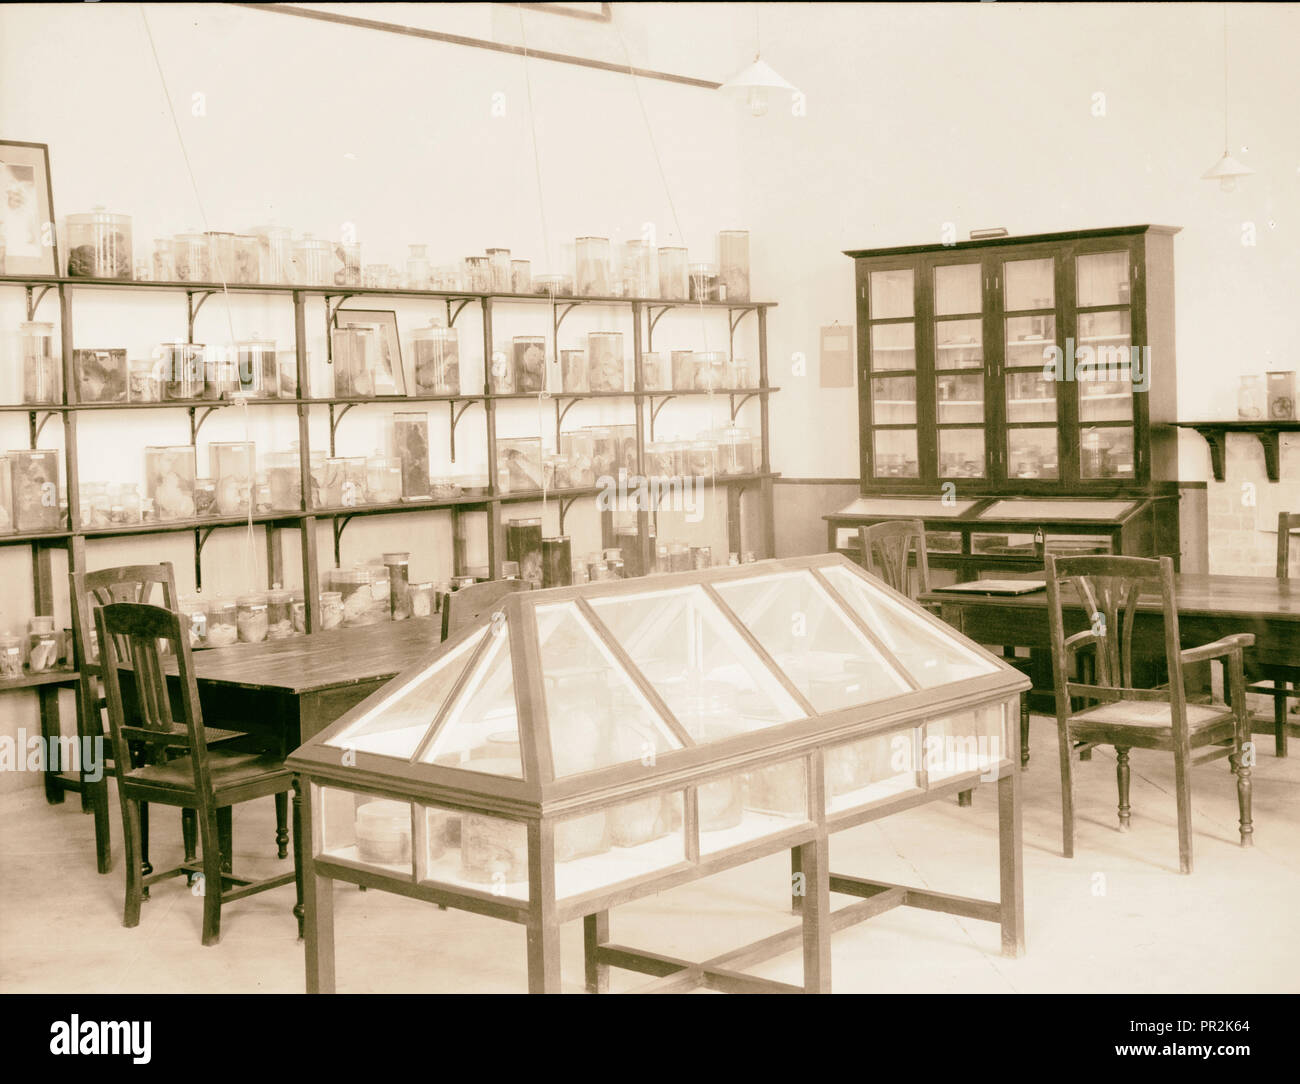 Iraq. (Mesopotamia). Royal College of Medicine of Iraq. Baghdad. Medical College. The Pathological Museum. 1932, Iraq, Baghdad - Stock Image